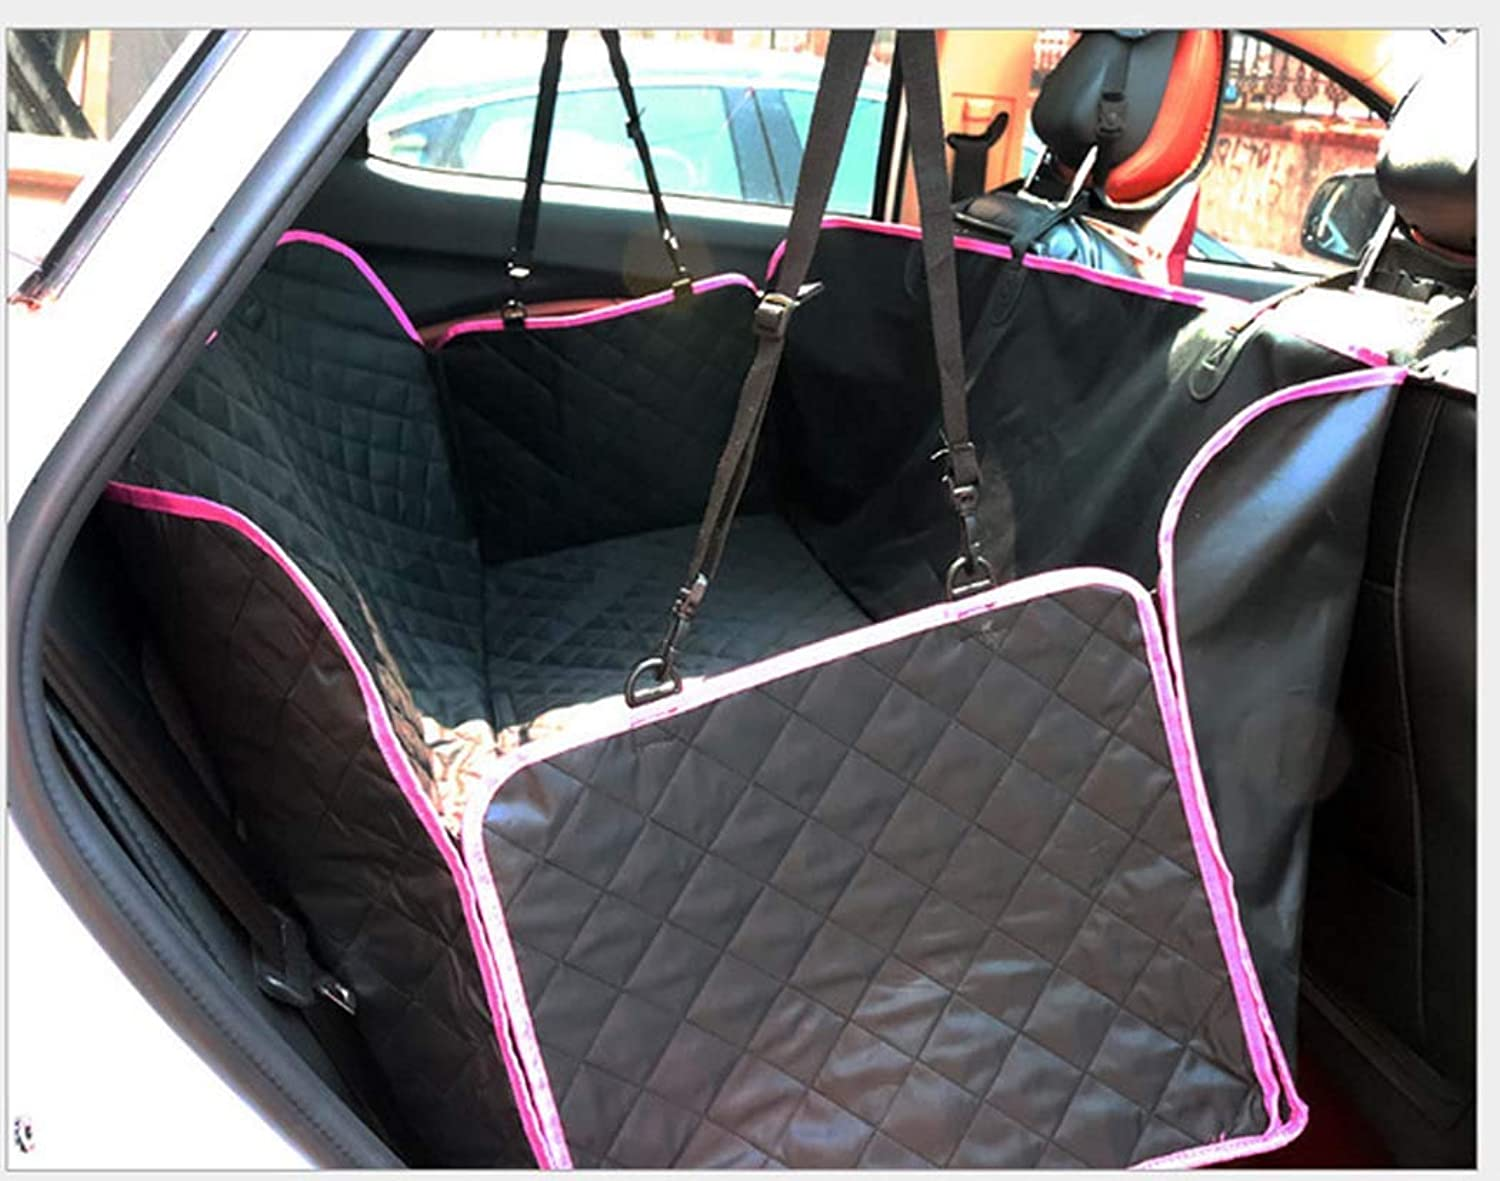 Dog car seat Cover Luxury pet seat Cover, 600D Heavy Duty Waterproof NonSlip AntiSlip pet seat Cover car SUV and Truck Hammock, Pet car seat Cover Back seat,rededging